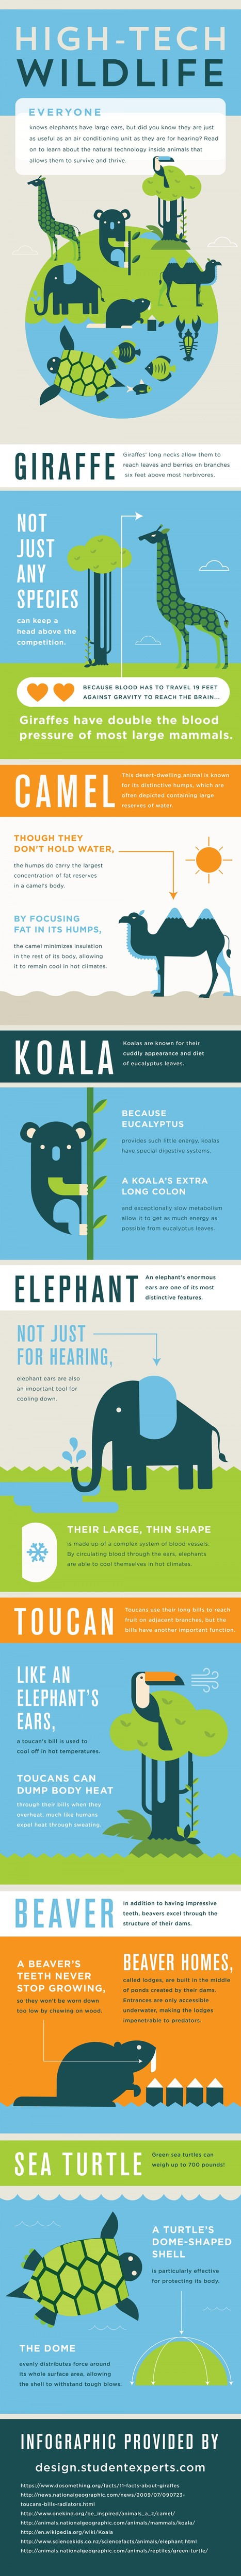 High-Tech Wildlife (Infographic) | Learning & Mind & Brain | Scoop.it